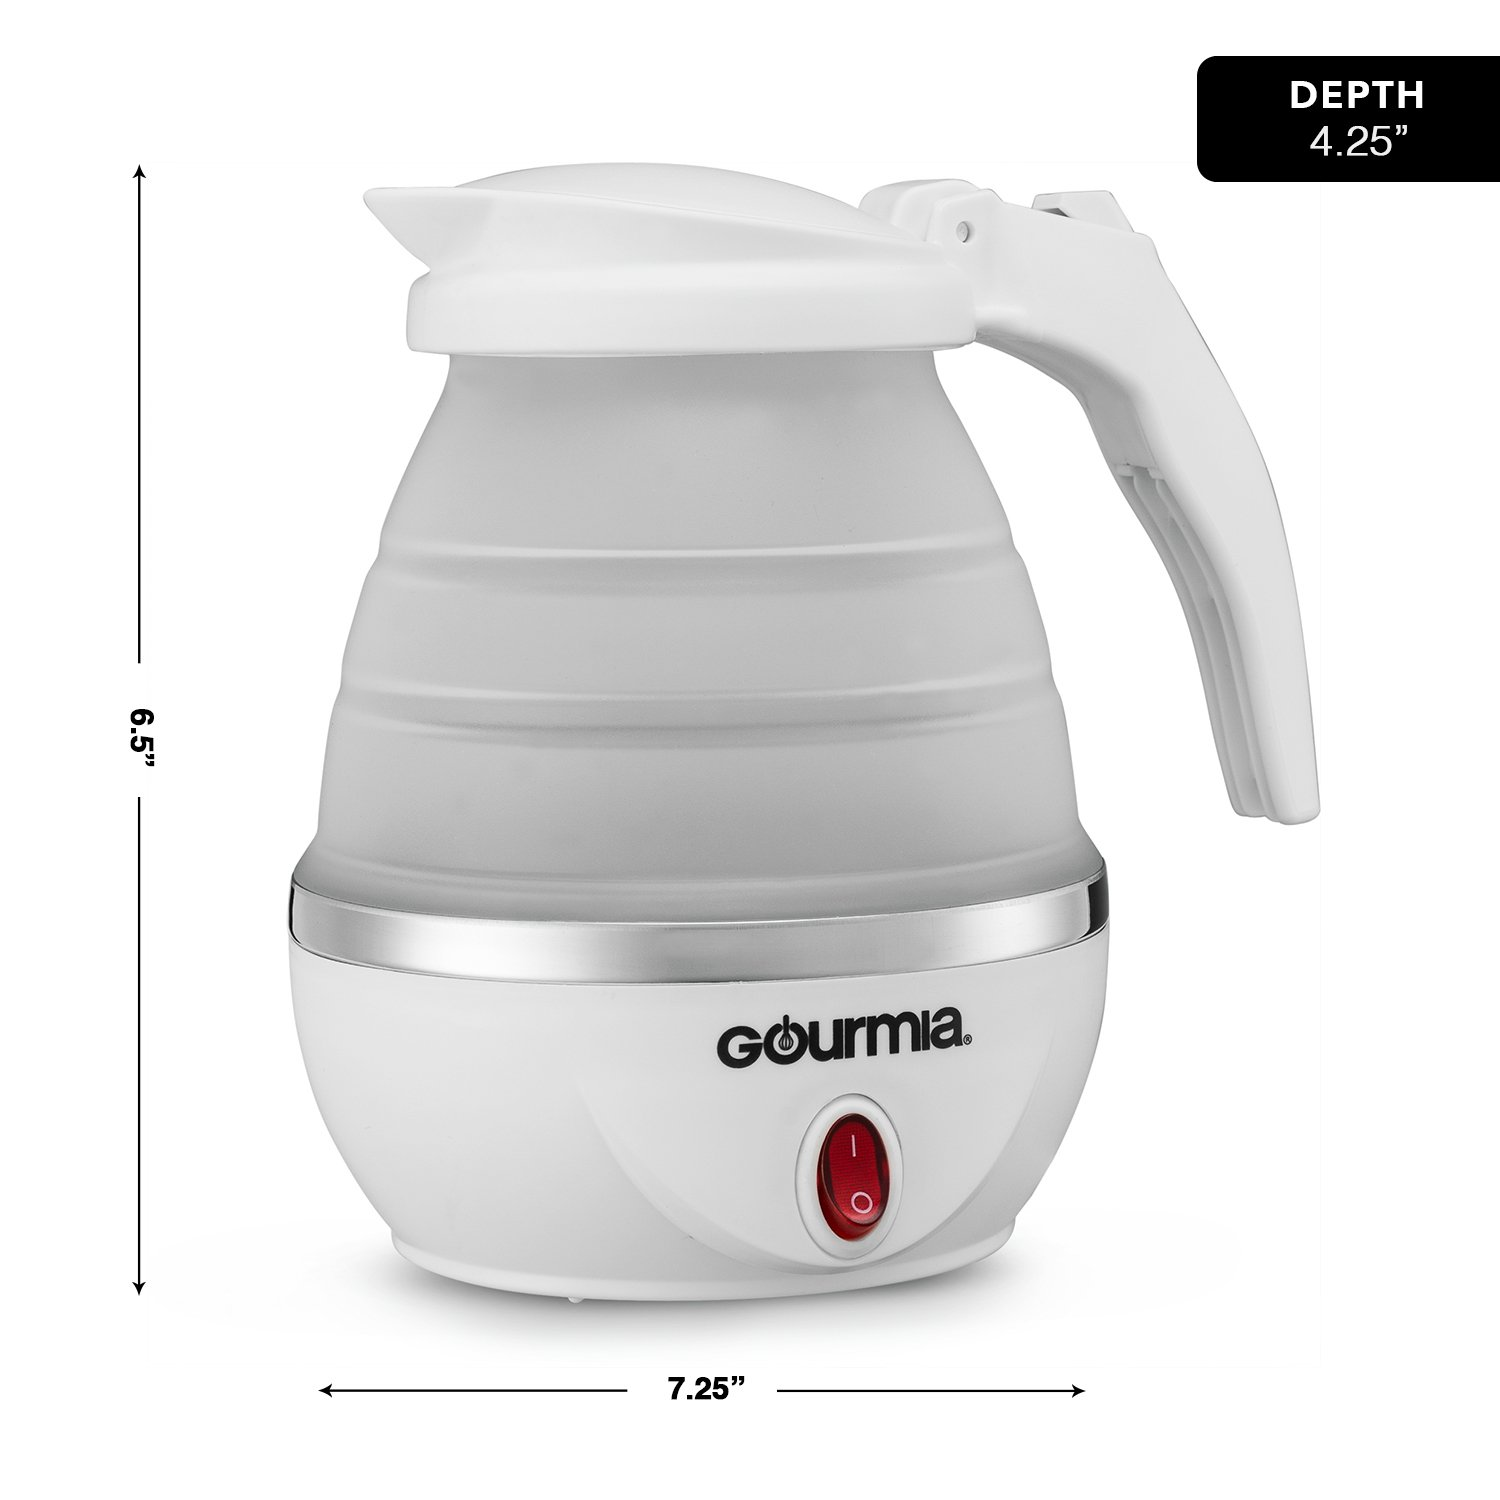 Gourmia GK360 Travel Foldable Electric Kettle - Fast Water Boiling - Food Grade Silicone - Small, Collapsible, Portable - Boil Dry Protection - .8 Qt - 110/120v - 820W - White by Gourmia